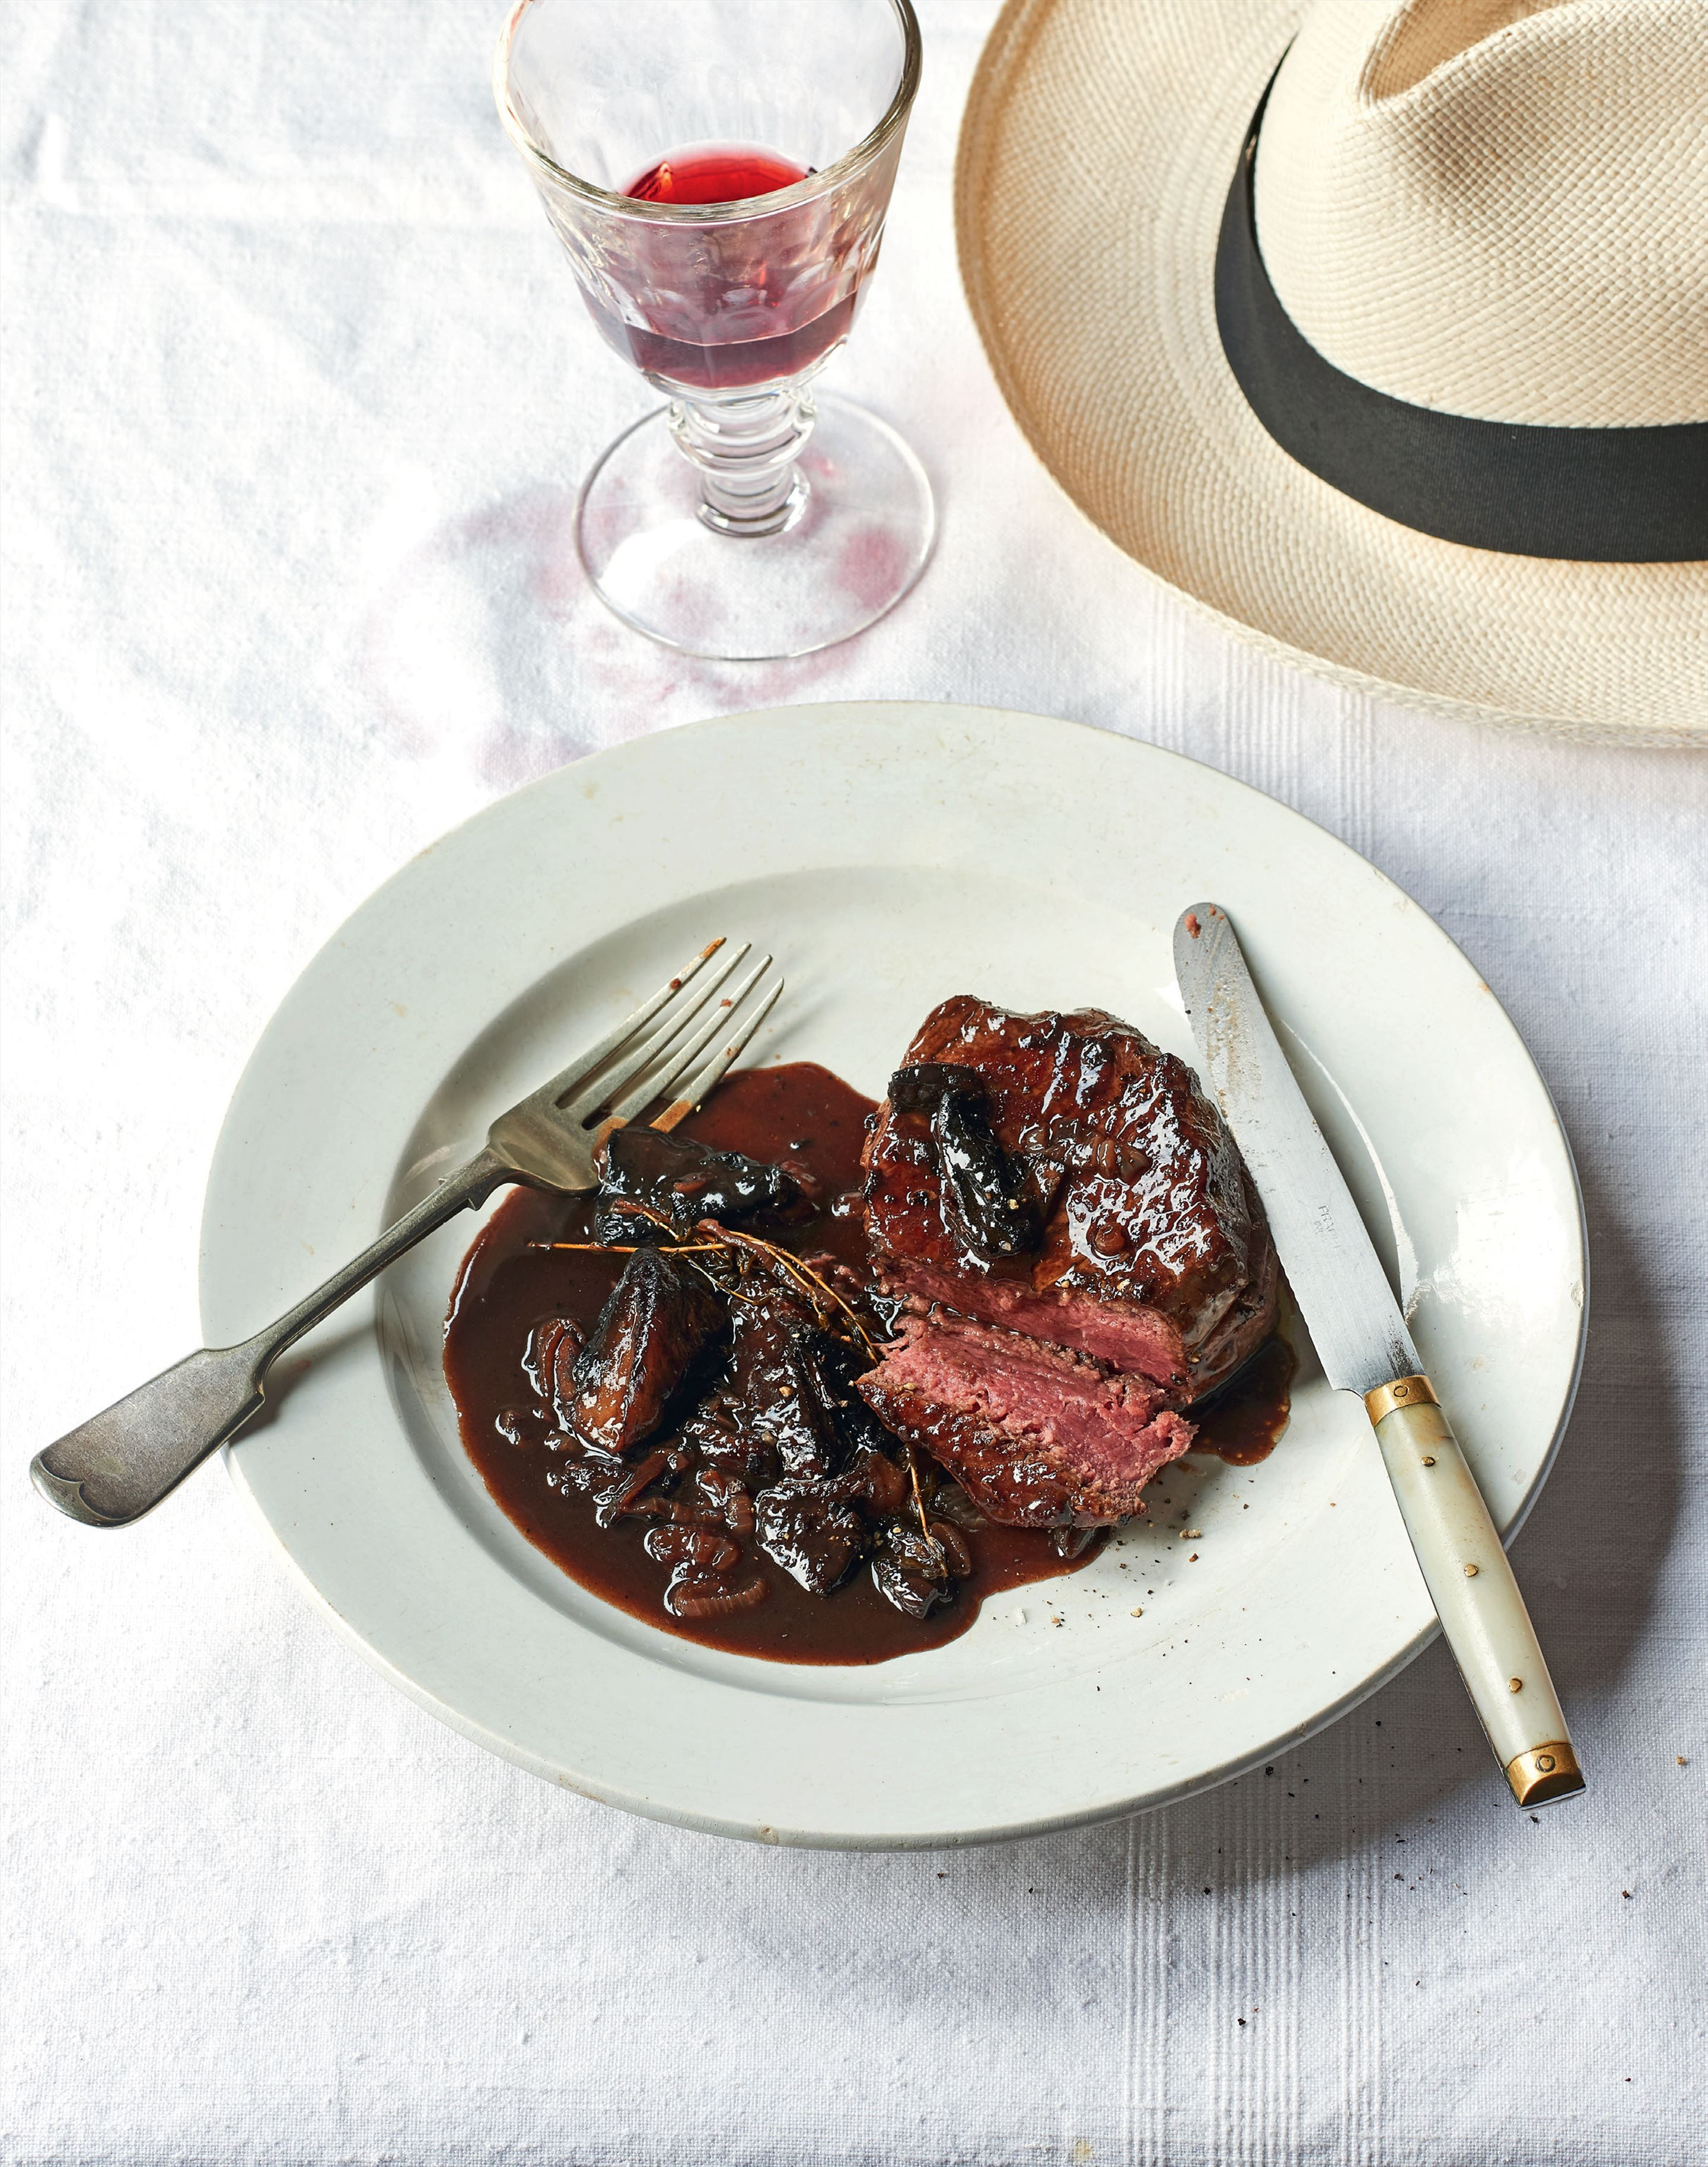 Fillet steak with Bordelaise sauce